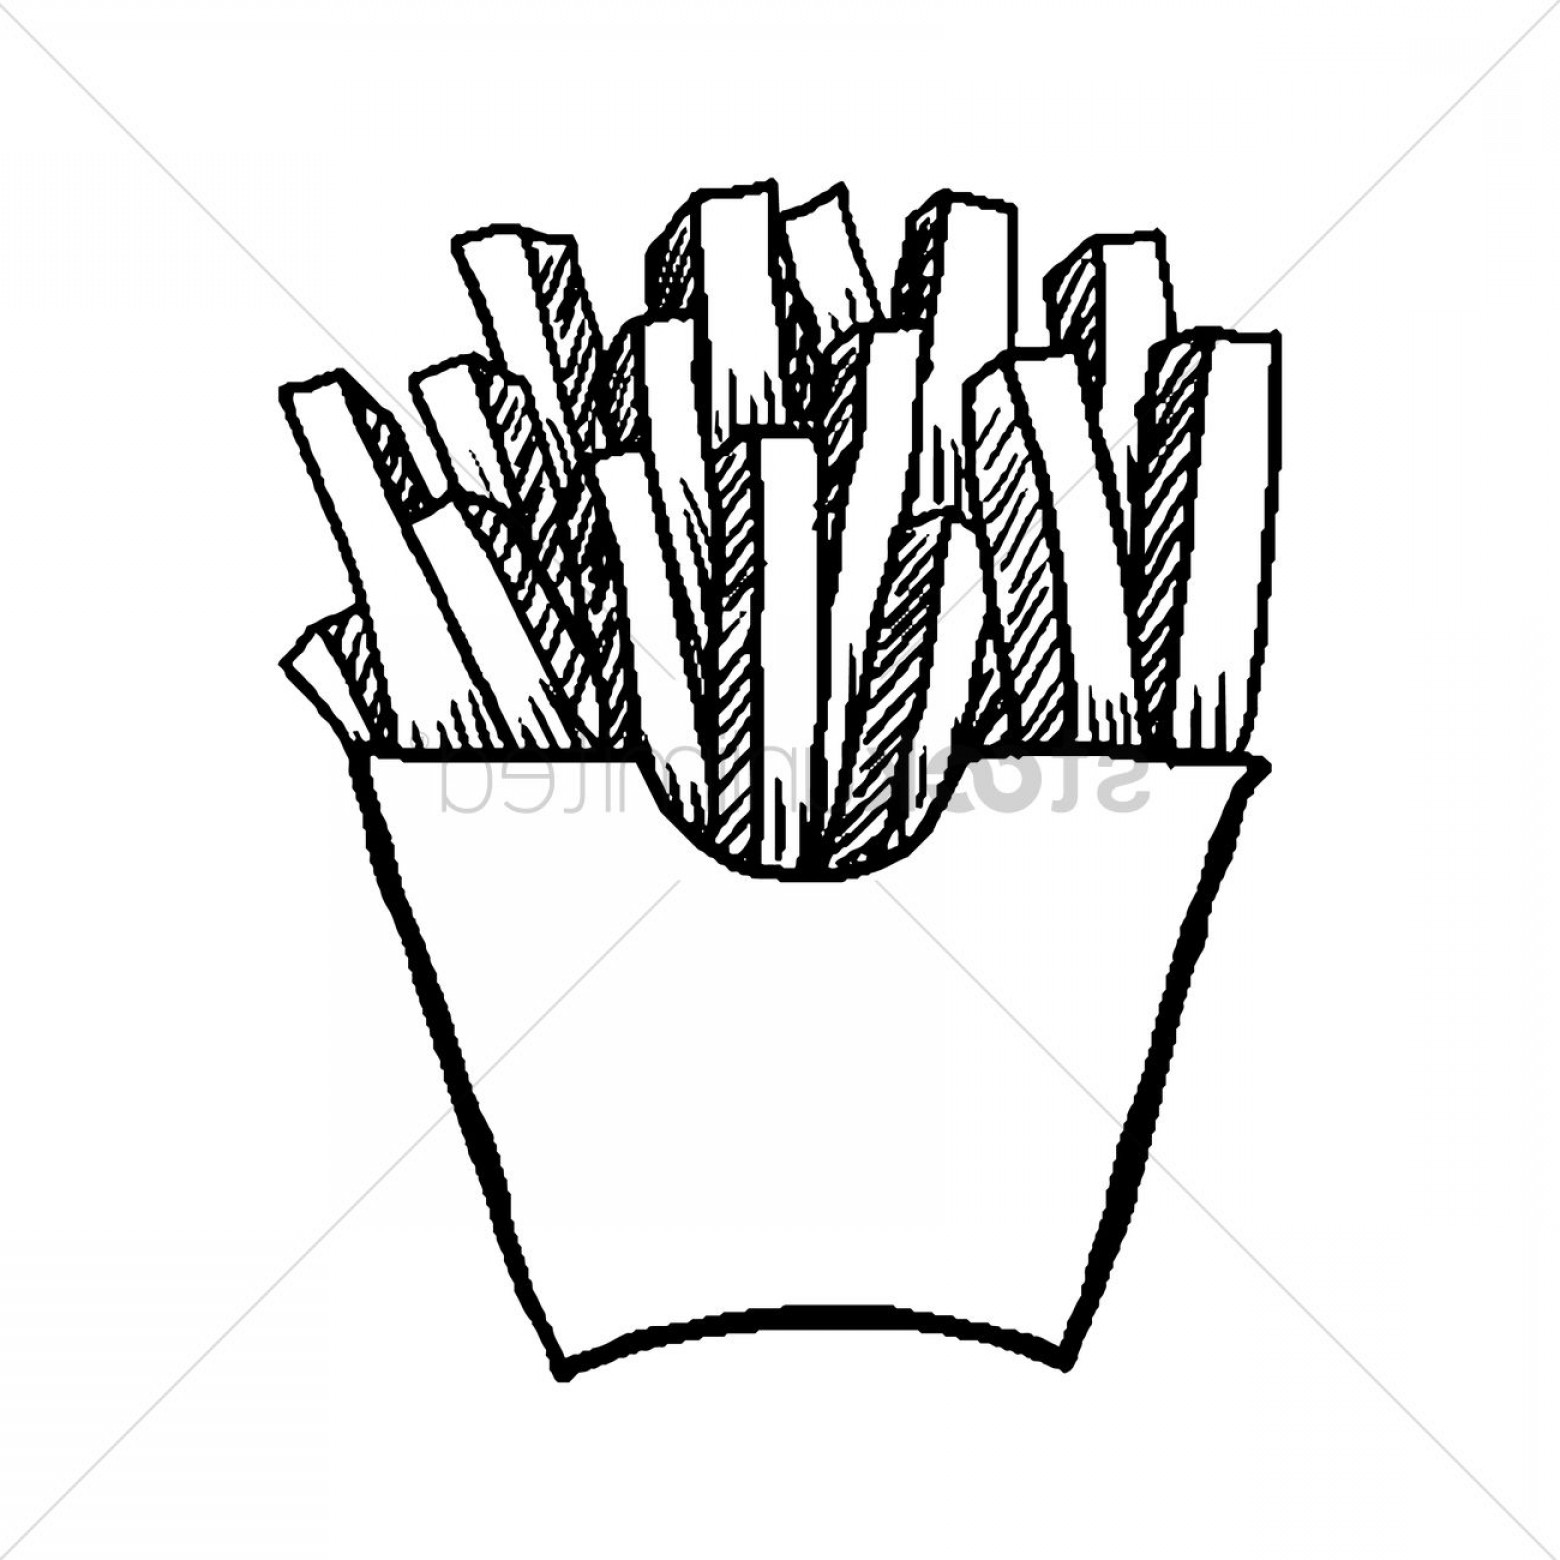 Fries Vector: Drawing Of French Fries French Fries Vector Image Stockunlimited